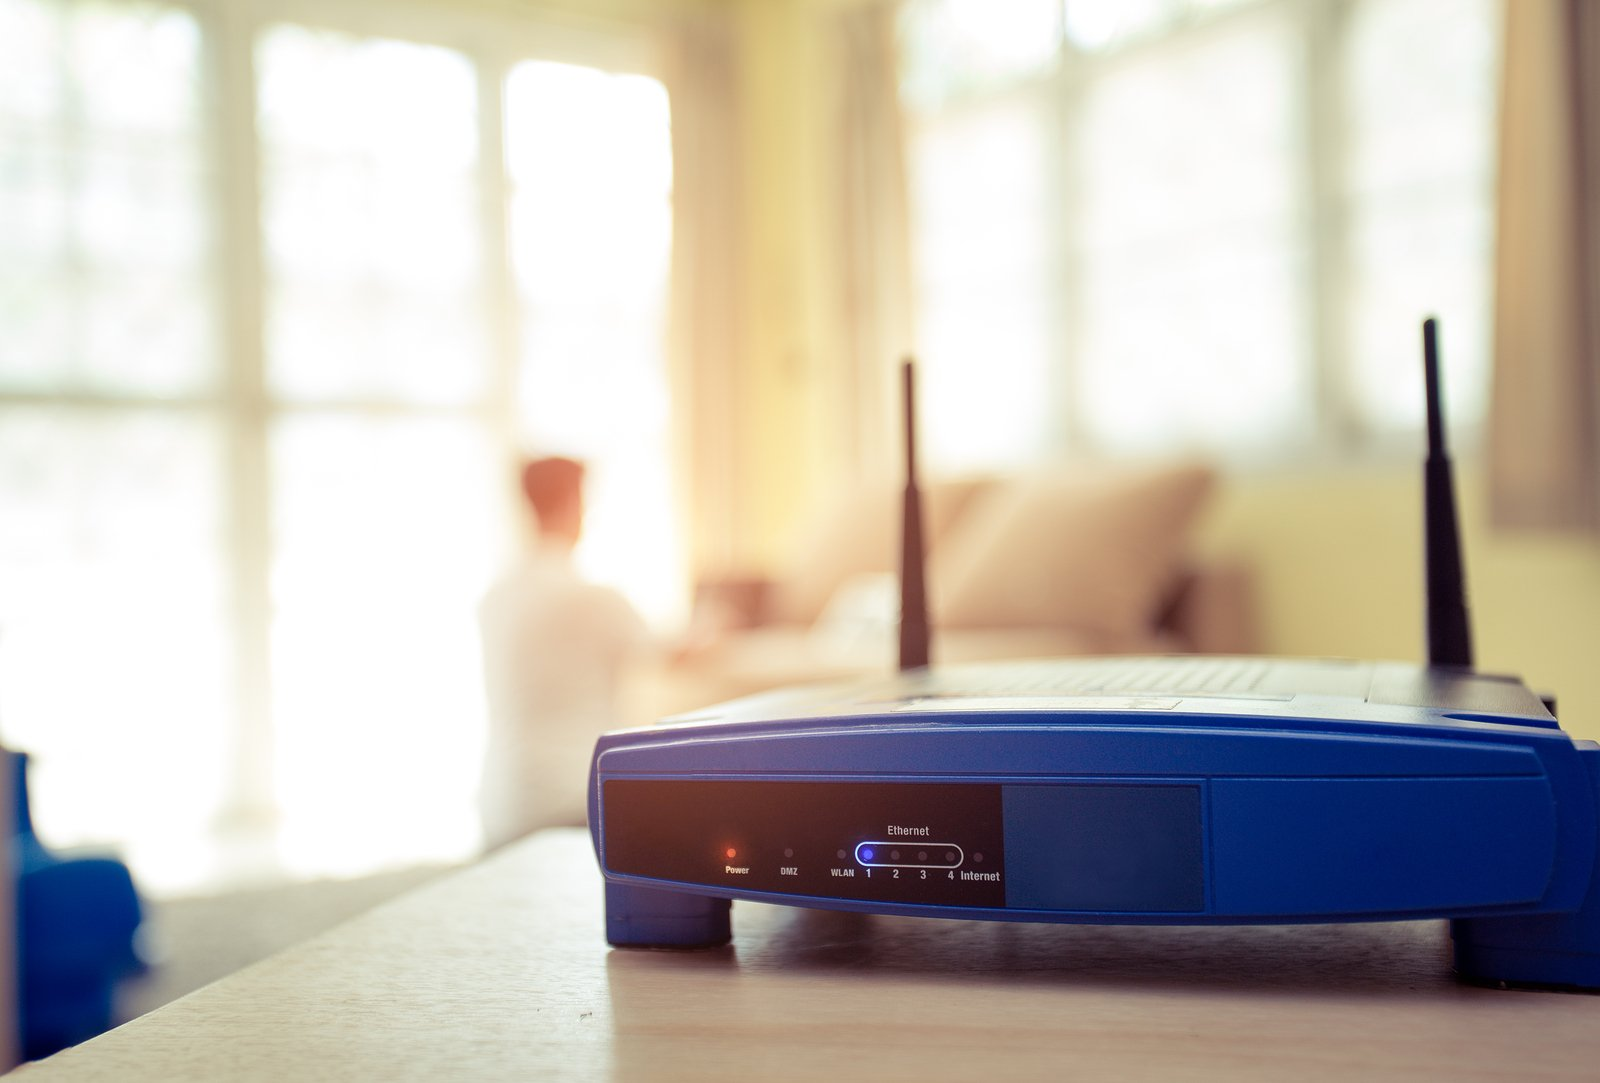 Check your broadband availability and speed